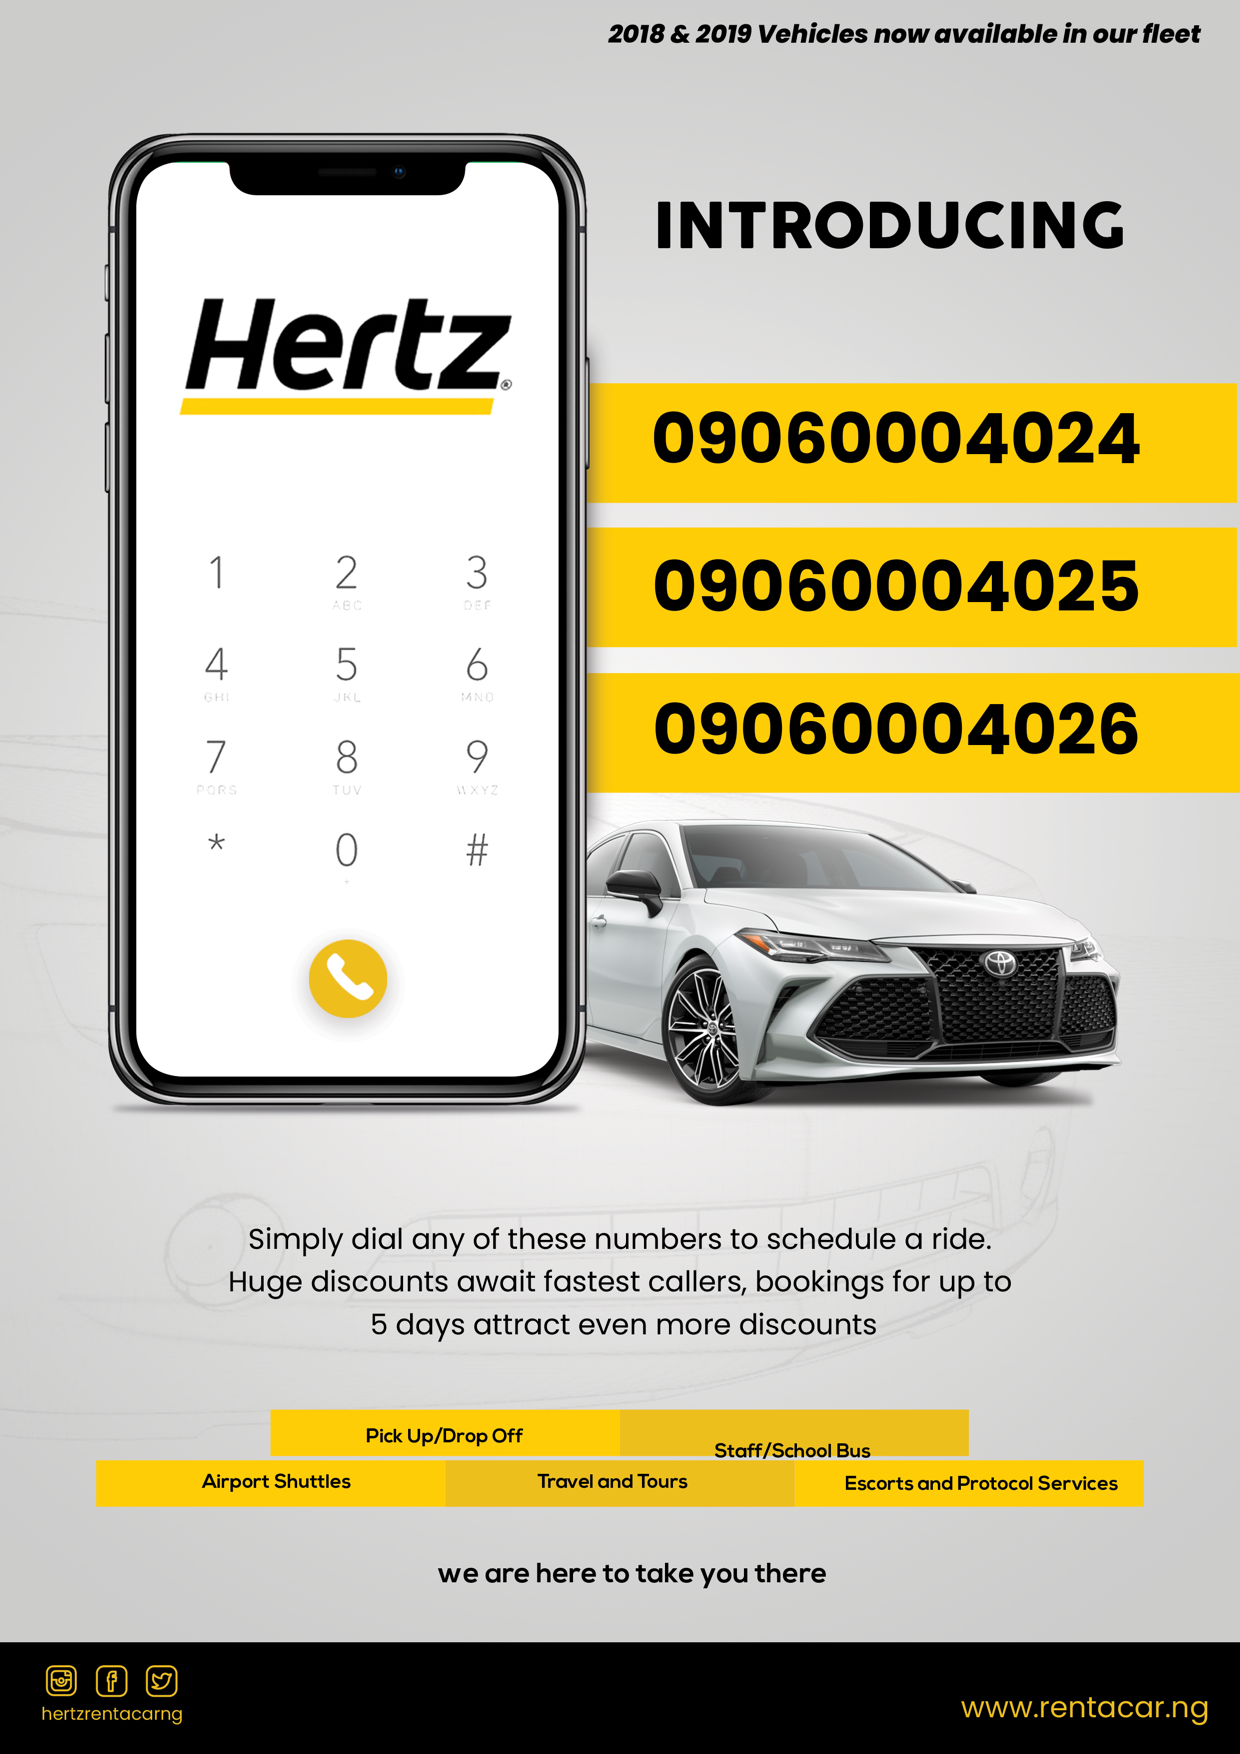 Phone numbers for Hertz Nigeria